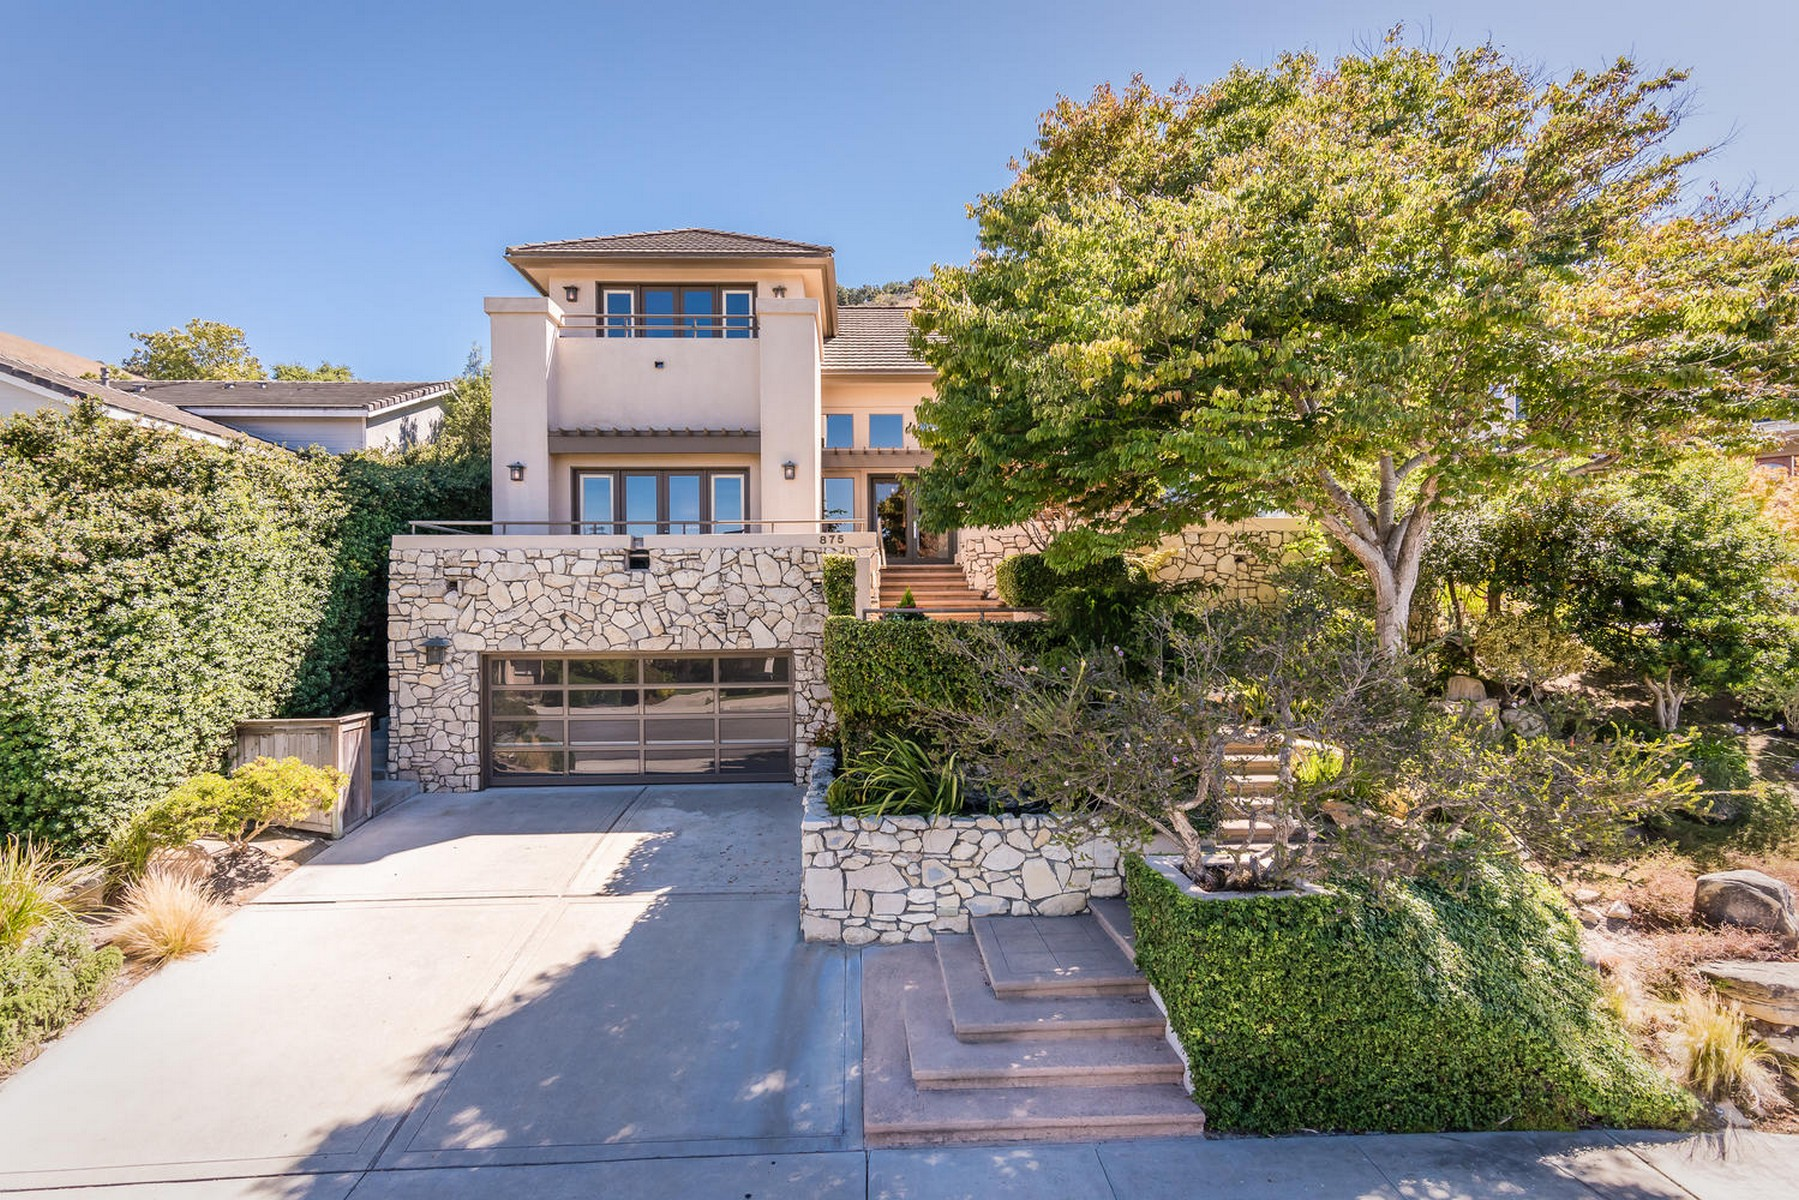 Single Family Home for Sale at Greystone Place 875 Greystone Place San Luis Obispo, California, 93401 United States